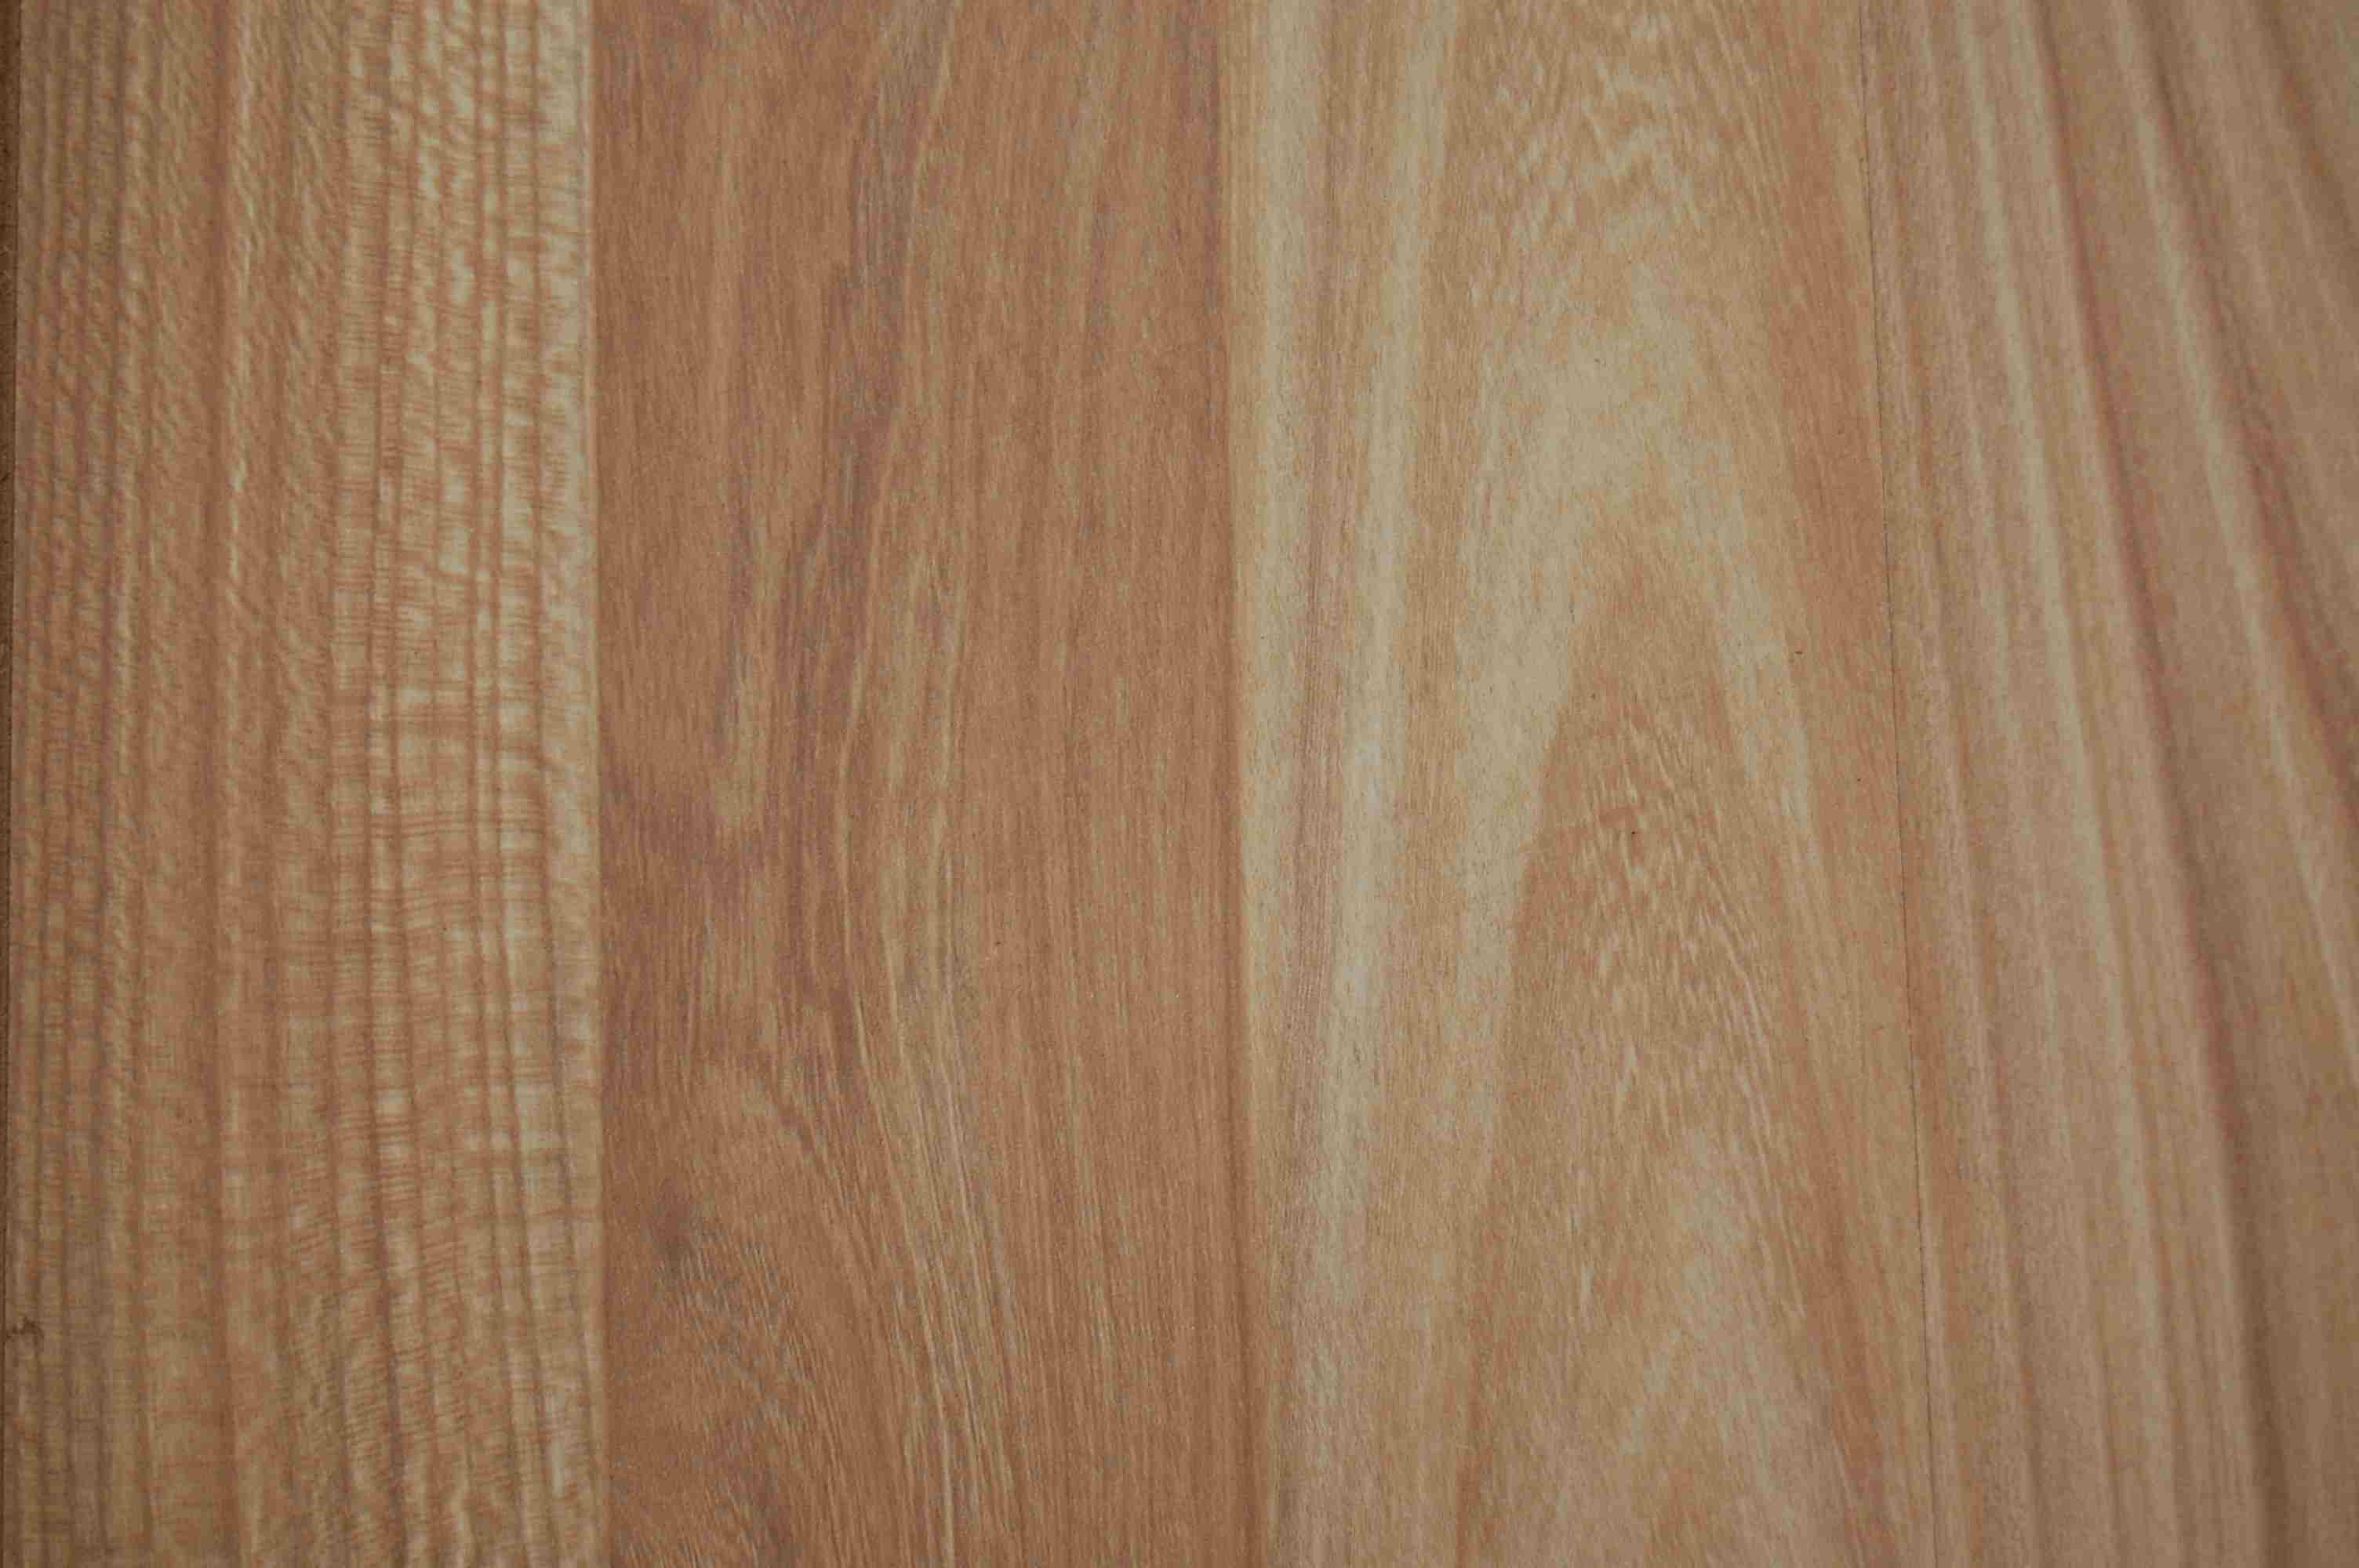 Laminate flooring wood and laminate flooring for Formica flooring